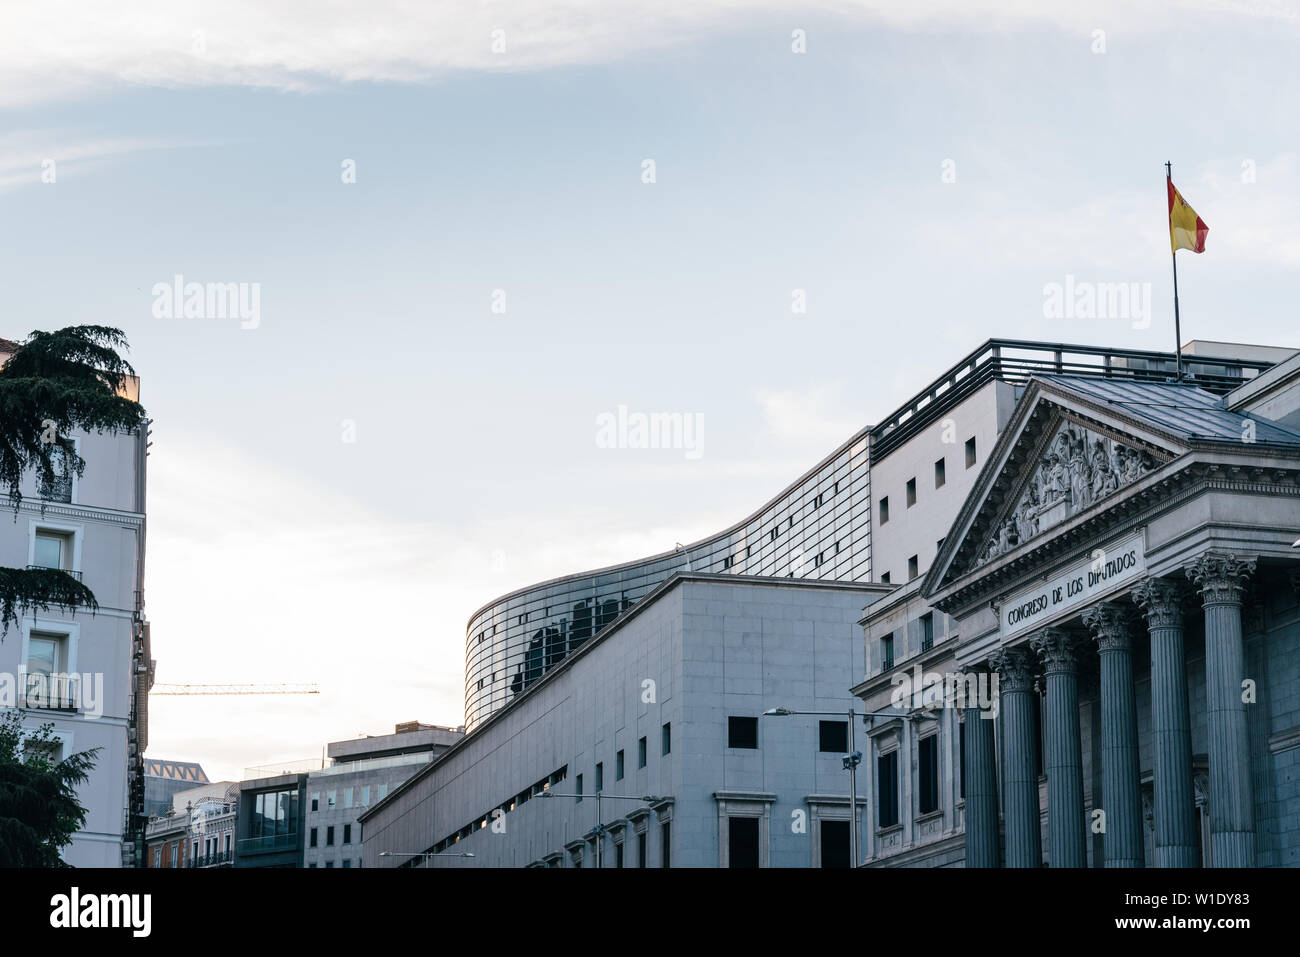 Madrid, Spain - April 14, 2019: View of the Congress of Deputies of Spain in Madrid at evening. Stock Photo